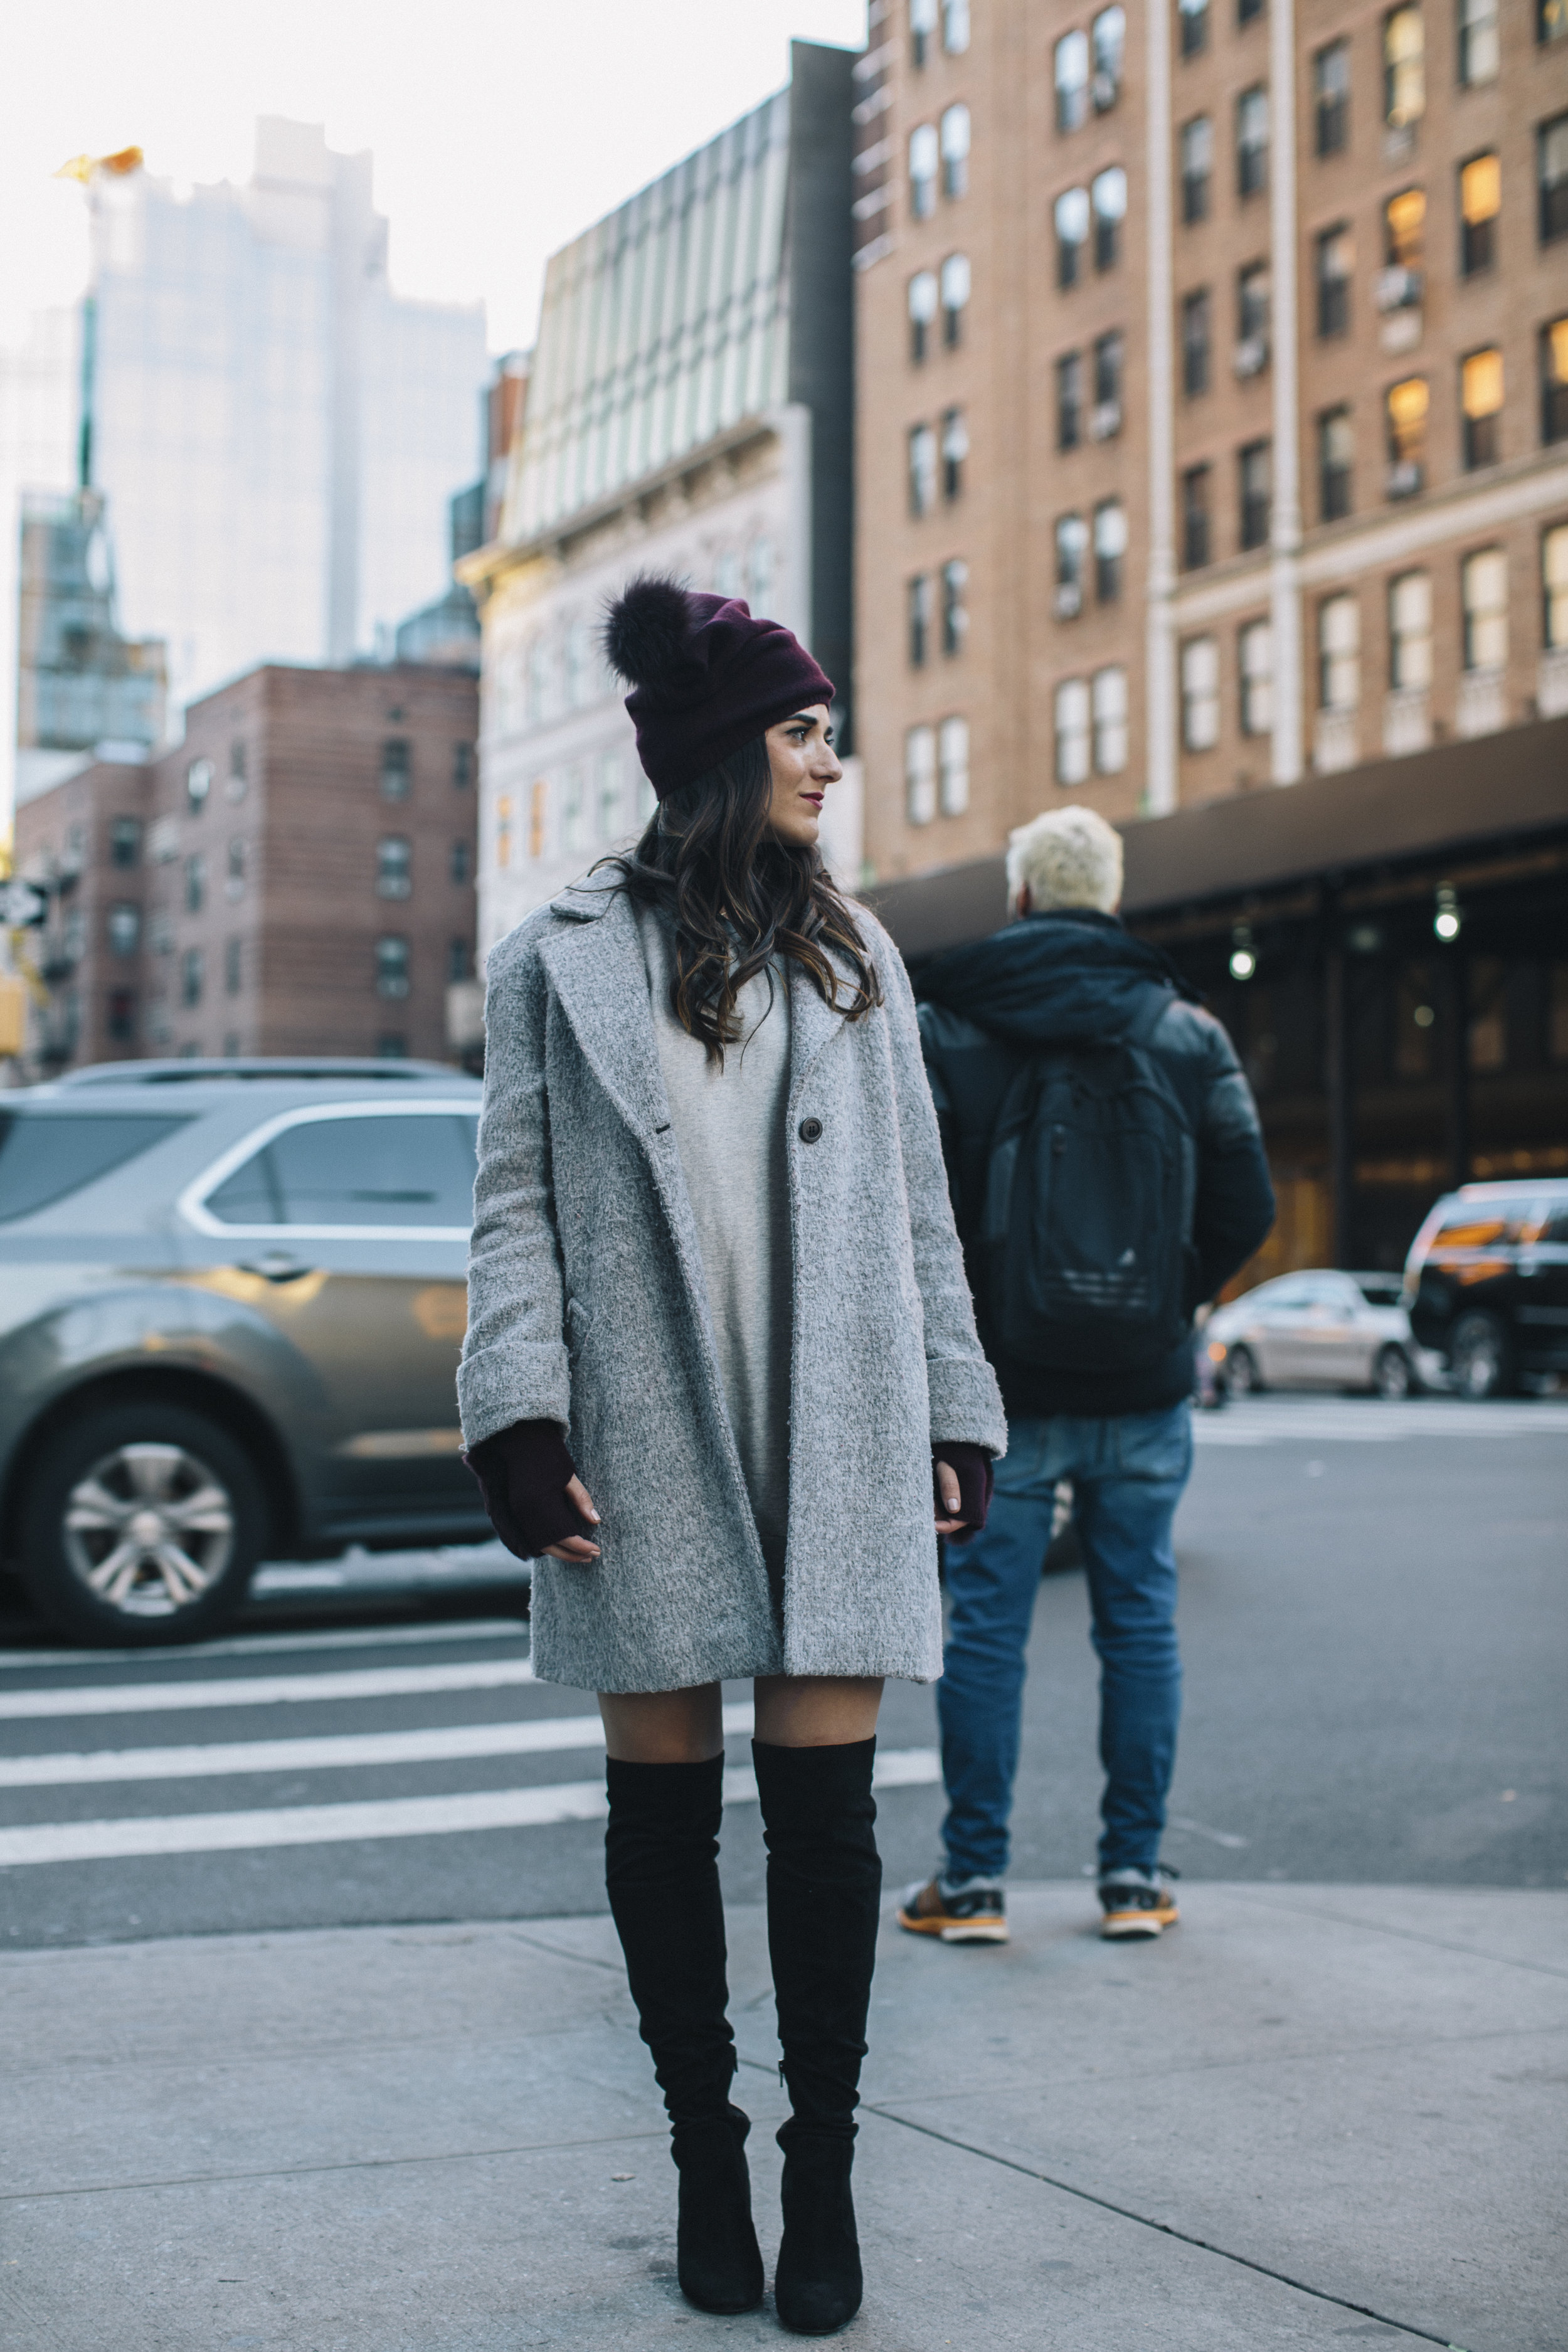 Cashmere Hat And Glove Set Piccolo New York Louboutins & Love Fashion Blog Esther Santer NYC Street Style Blogger Outfit OOTD Trendy Winter Wear Cold Weather Online Shopping Holiday Season Grey Coat Zara Sweatshirt Dress OTK Black Boots Stylish Cozy.jpg